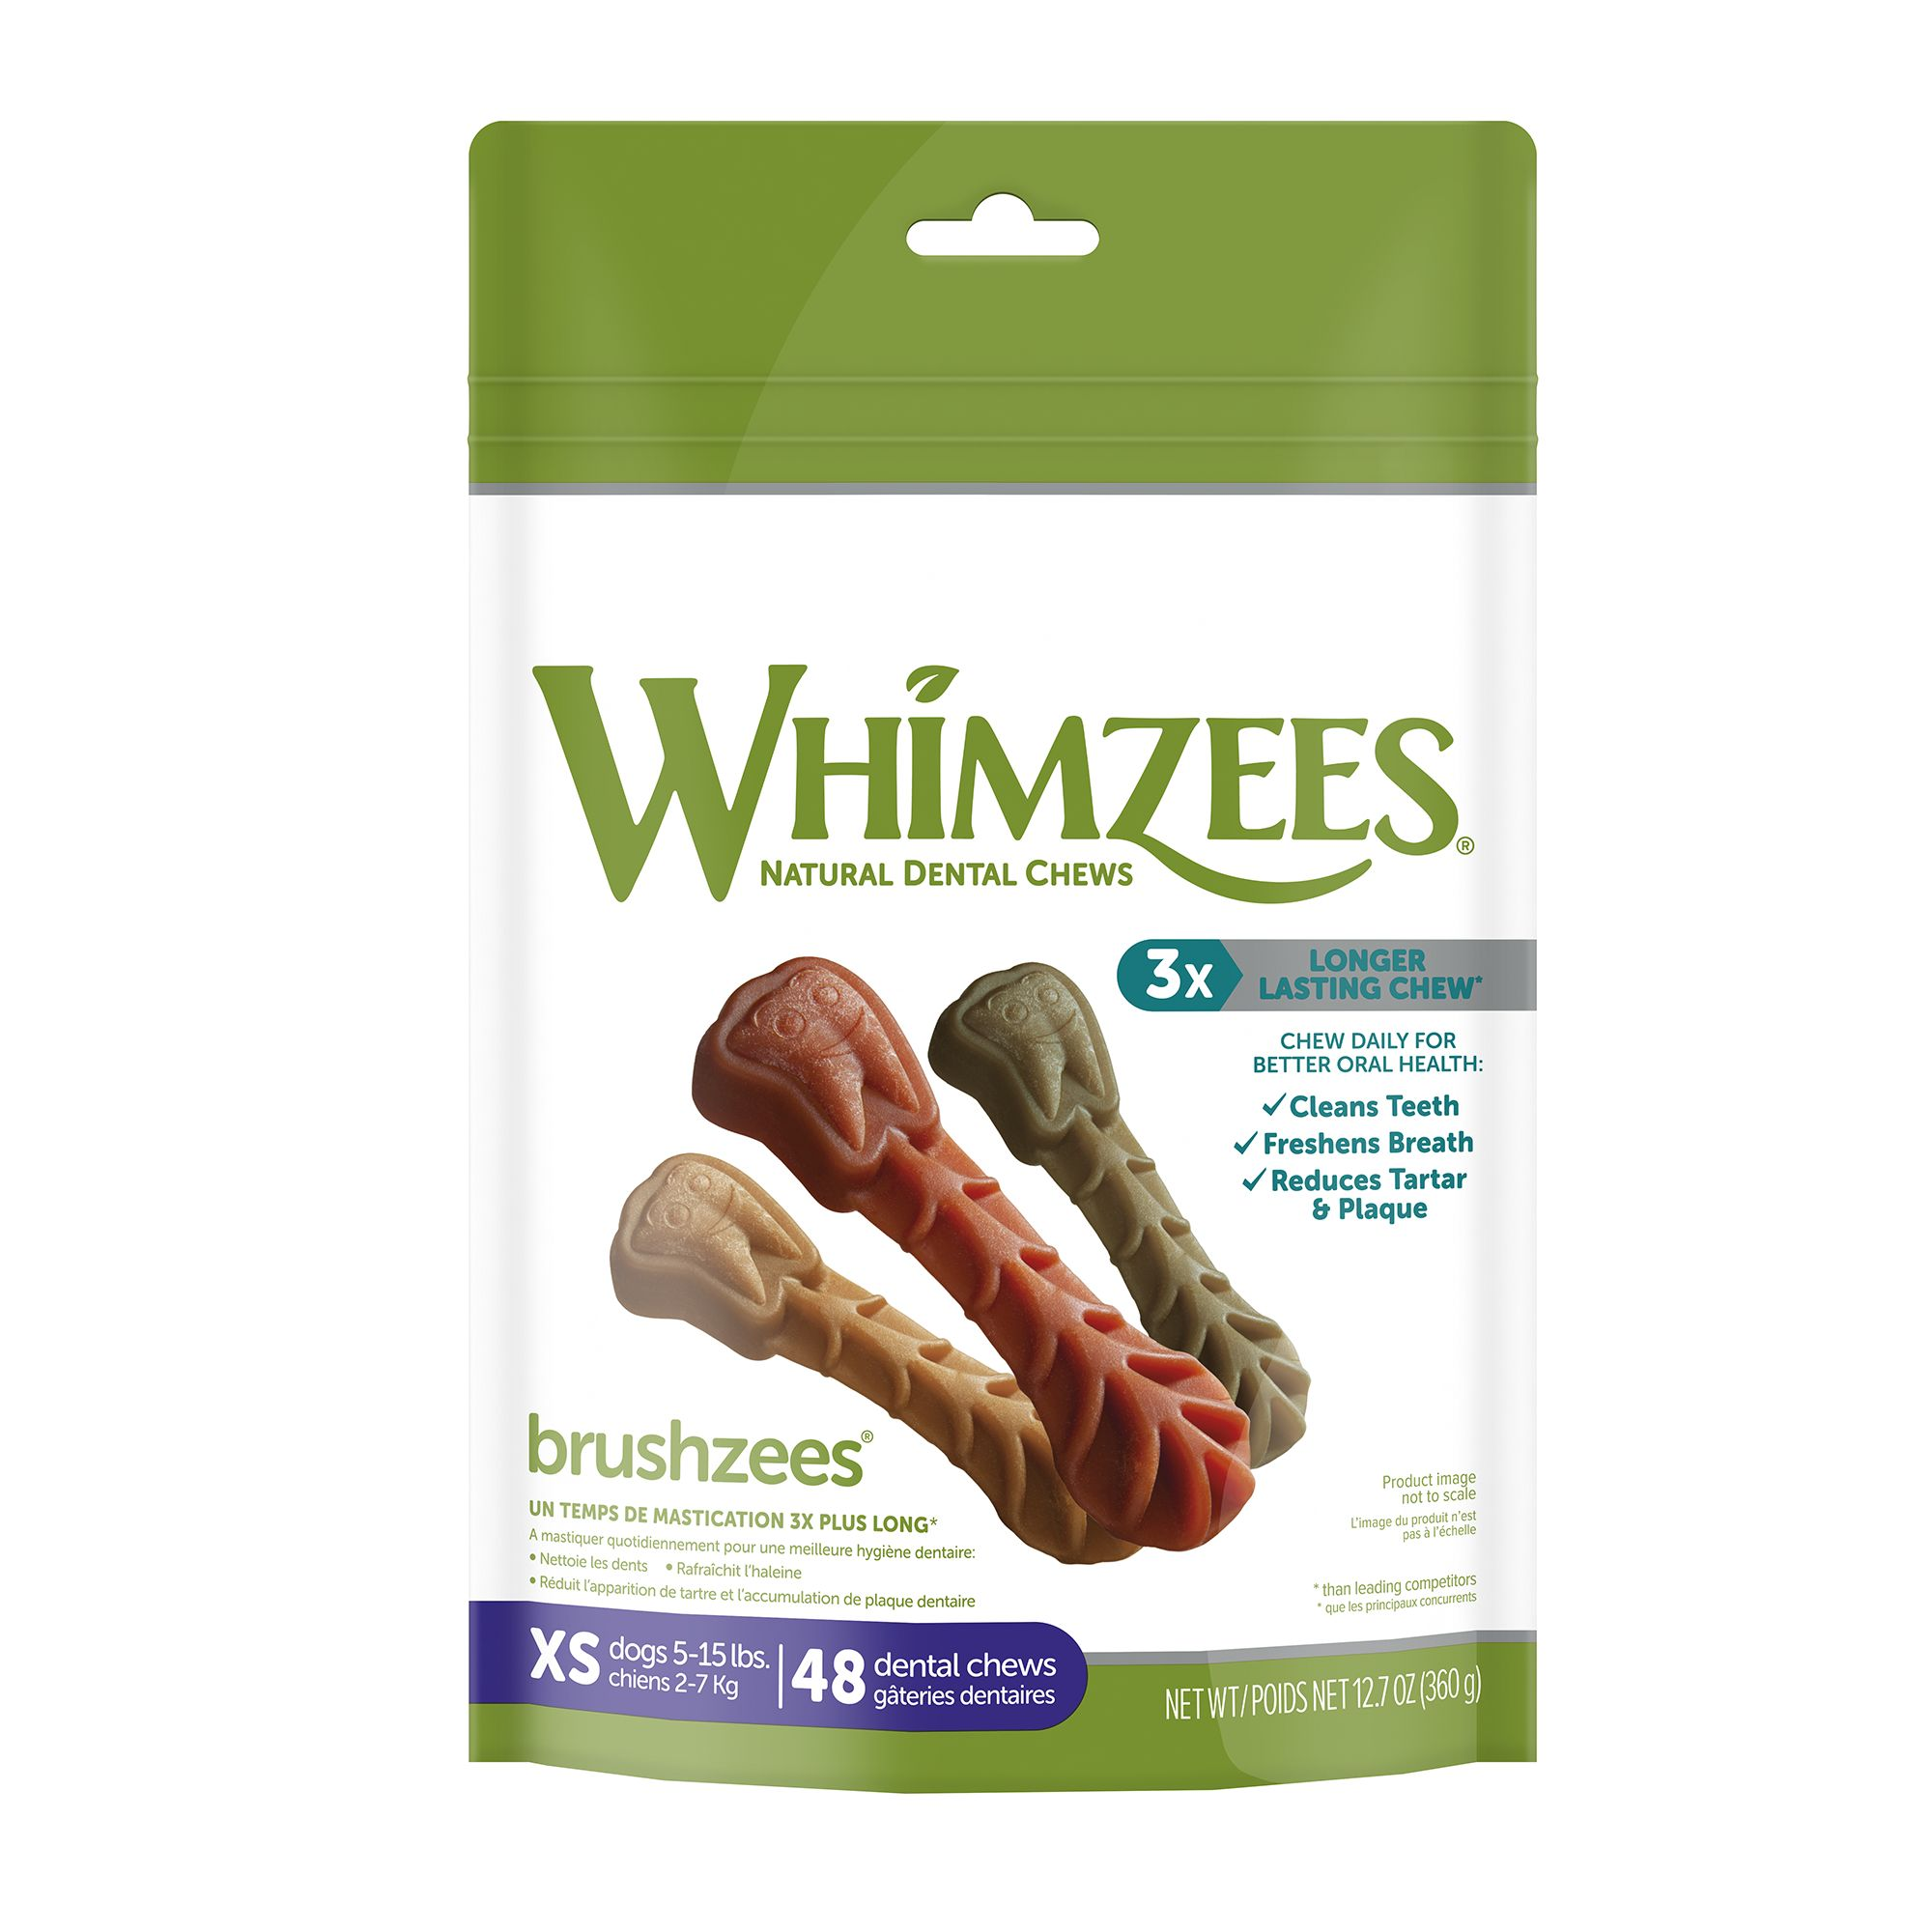 Whimzees Dental Care Toothbrush Extra Small Dog Treat Natural Gluten Free Vegetarian Size 49 Count